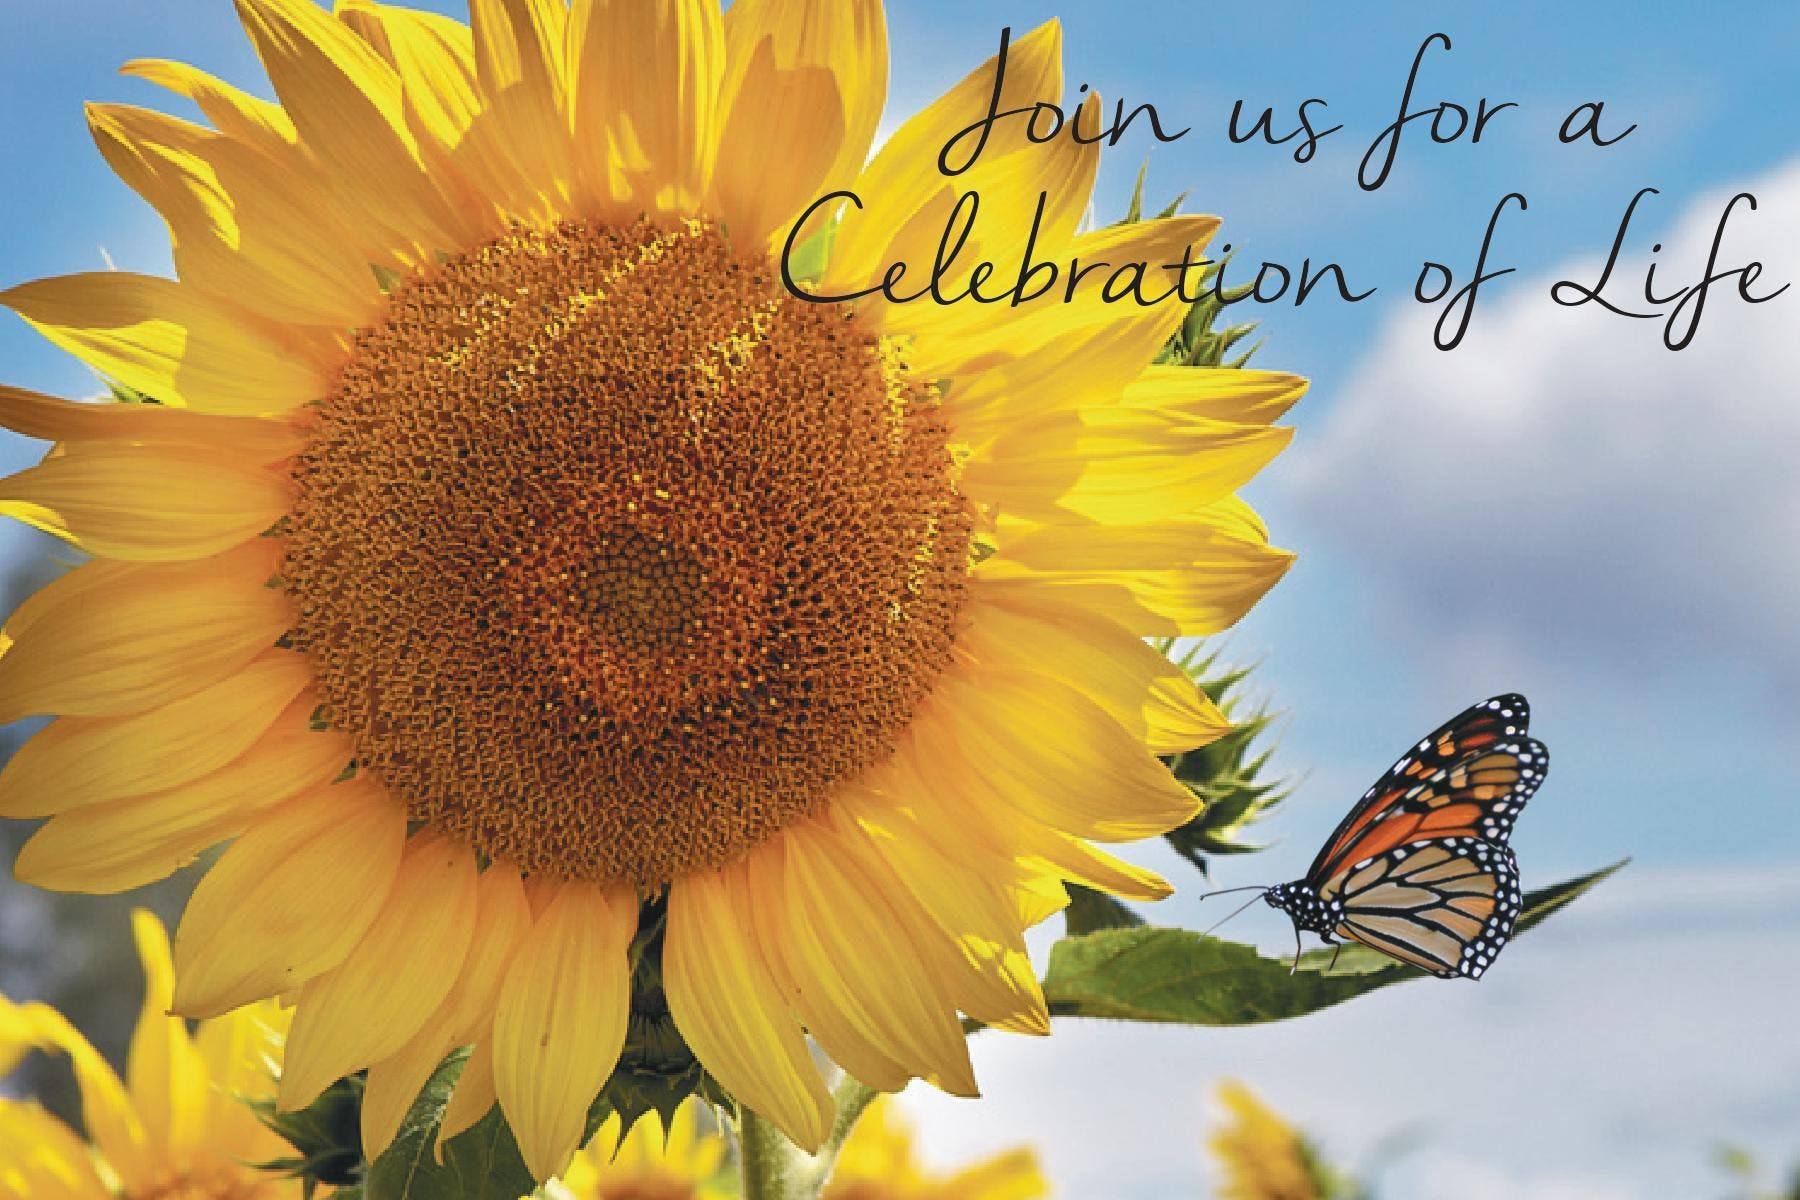 Celebration of Life Butterfly Release and Candle Light Ceremony